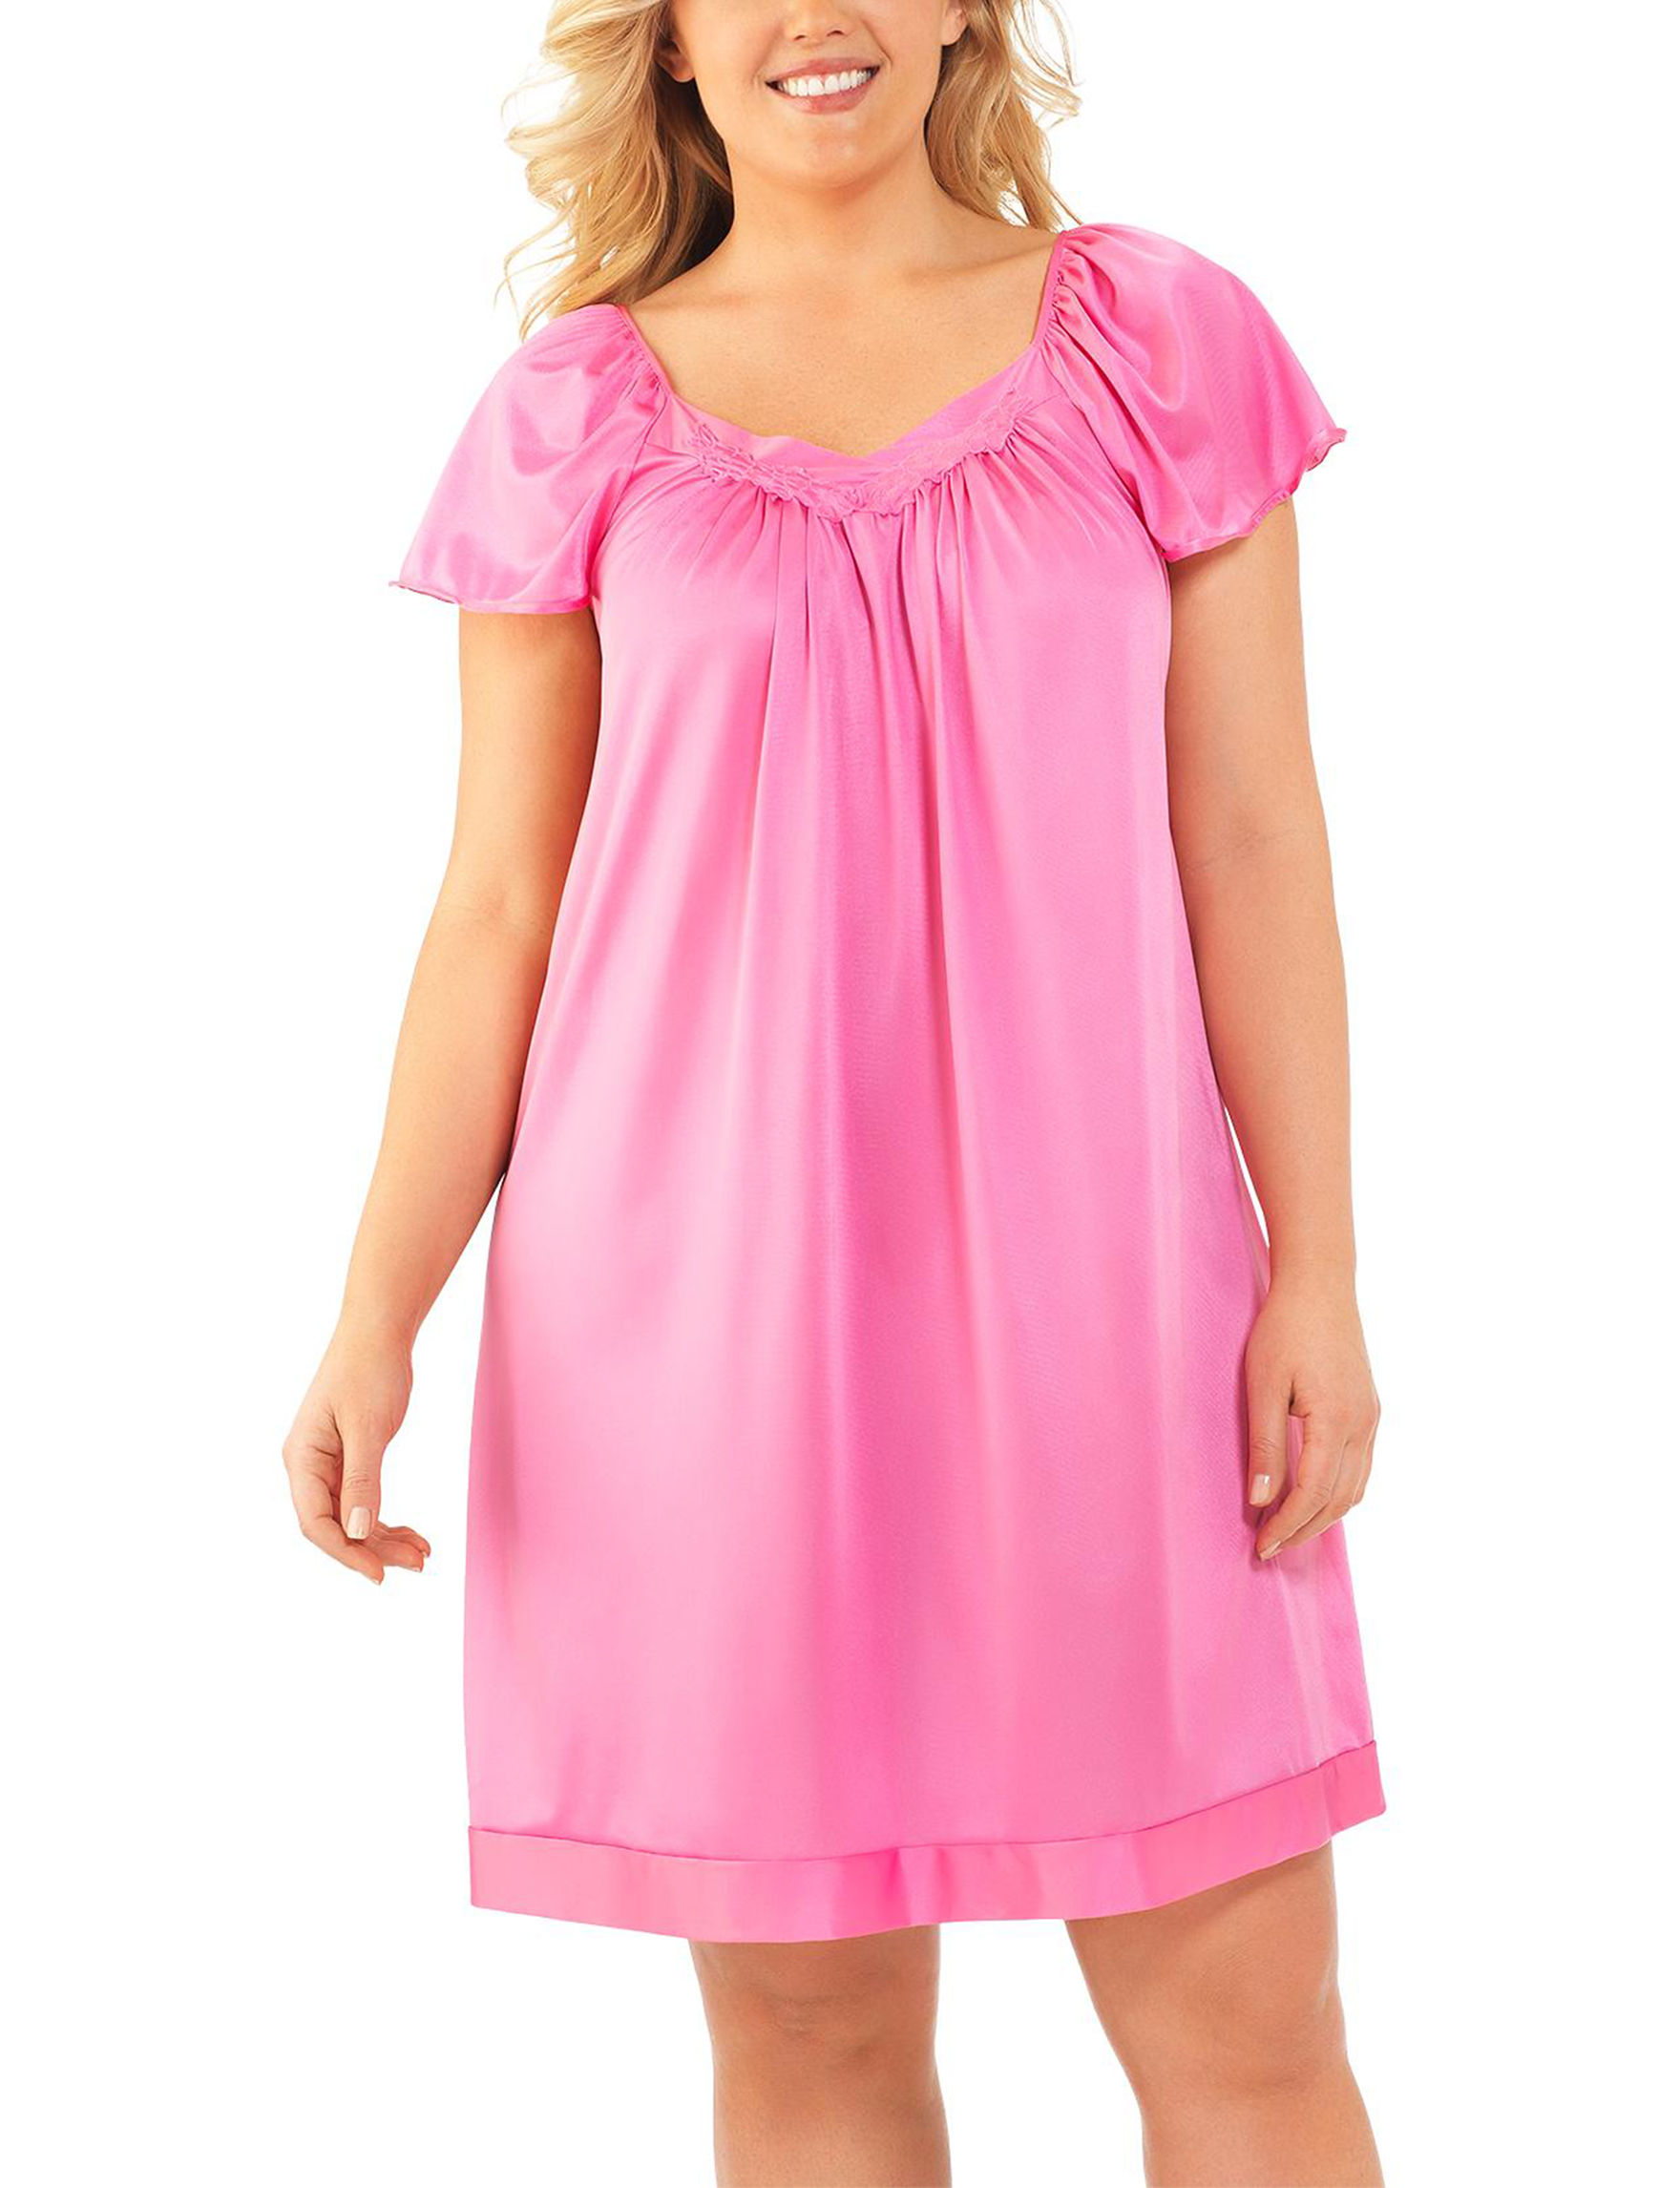 Exquisite Form Rose Nightgowns & Sleep Shirts